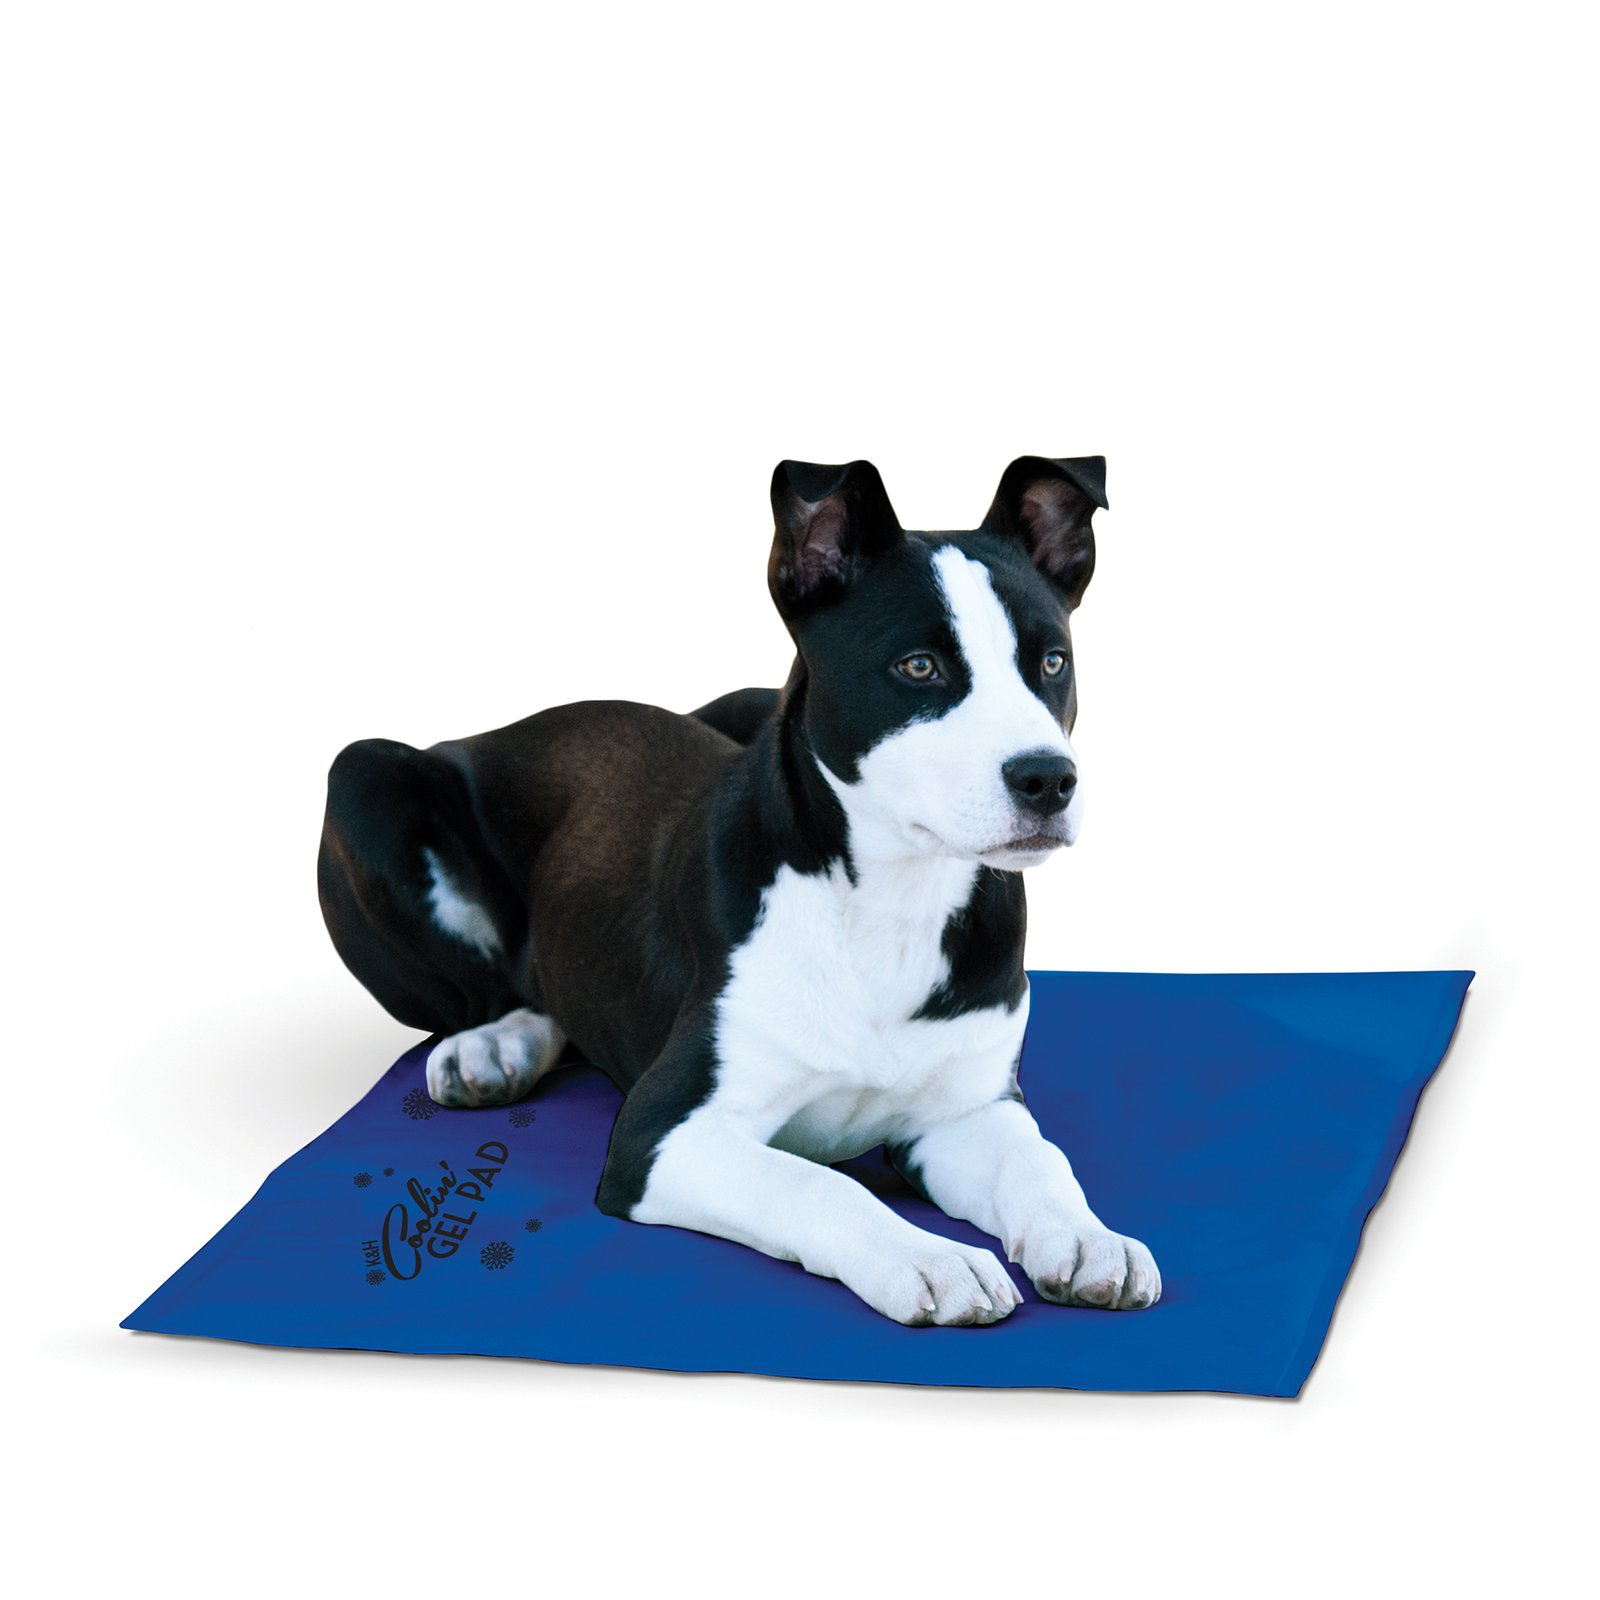 K&H Pet Products Coolin' Pet Pad, Extra Large, Blue